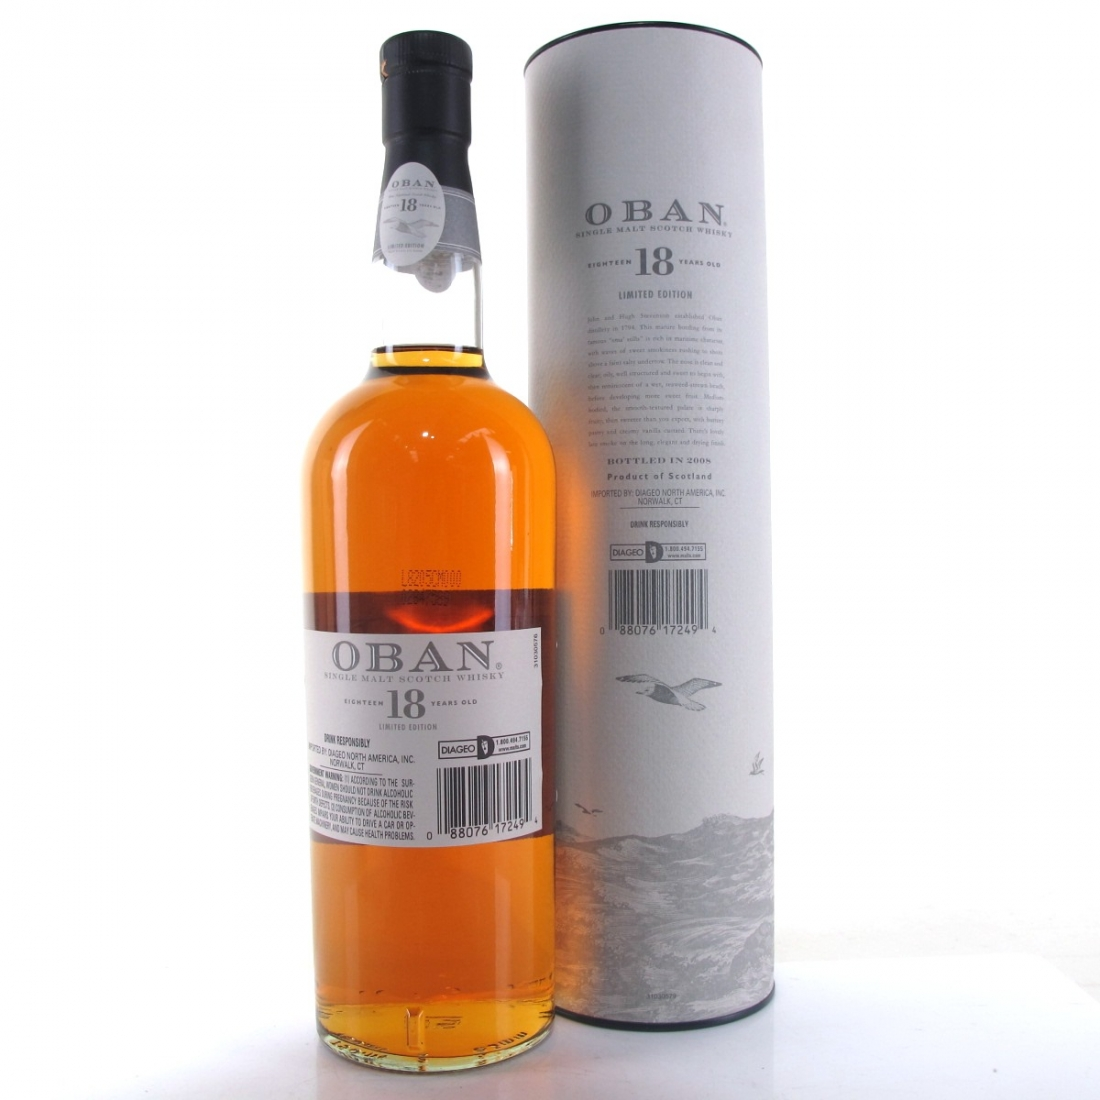 Oban 18 Year Old Limited Edition 75cl / US Import